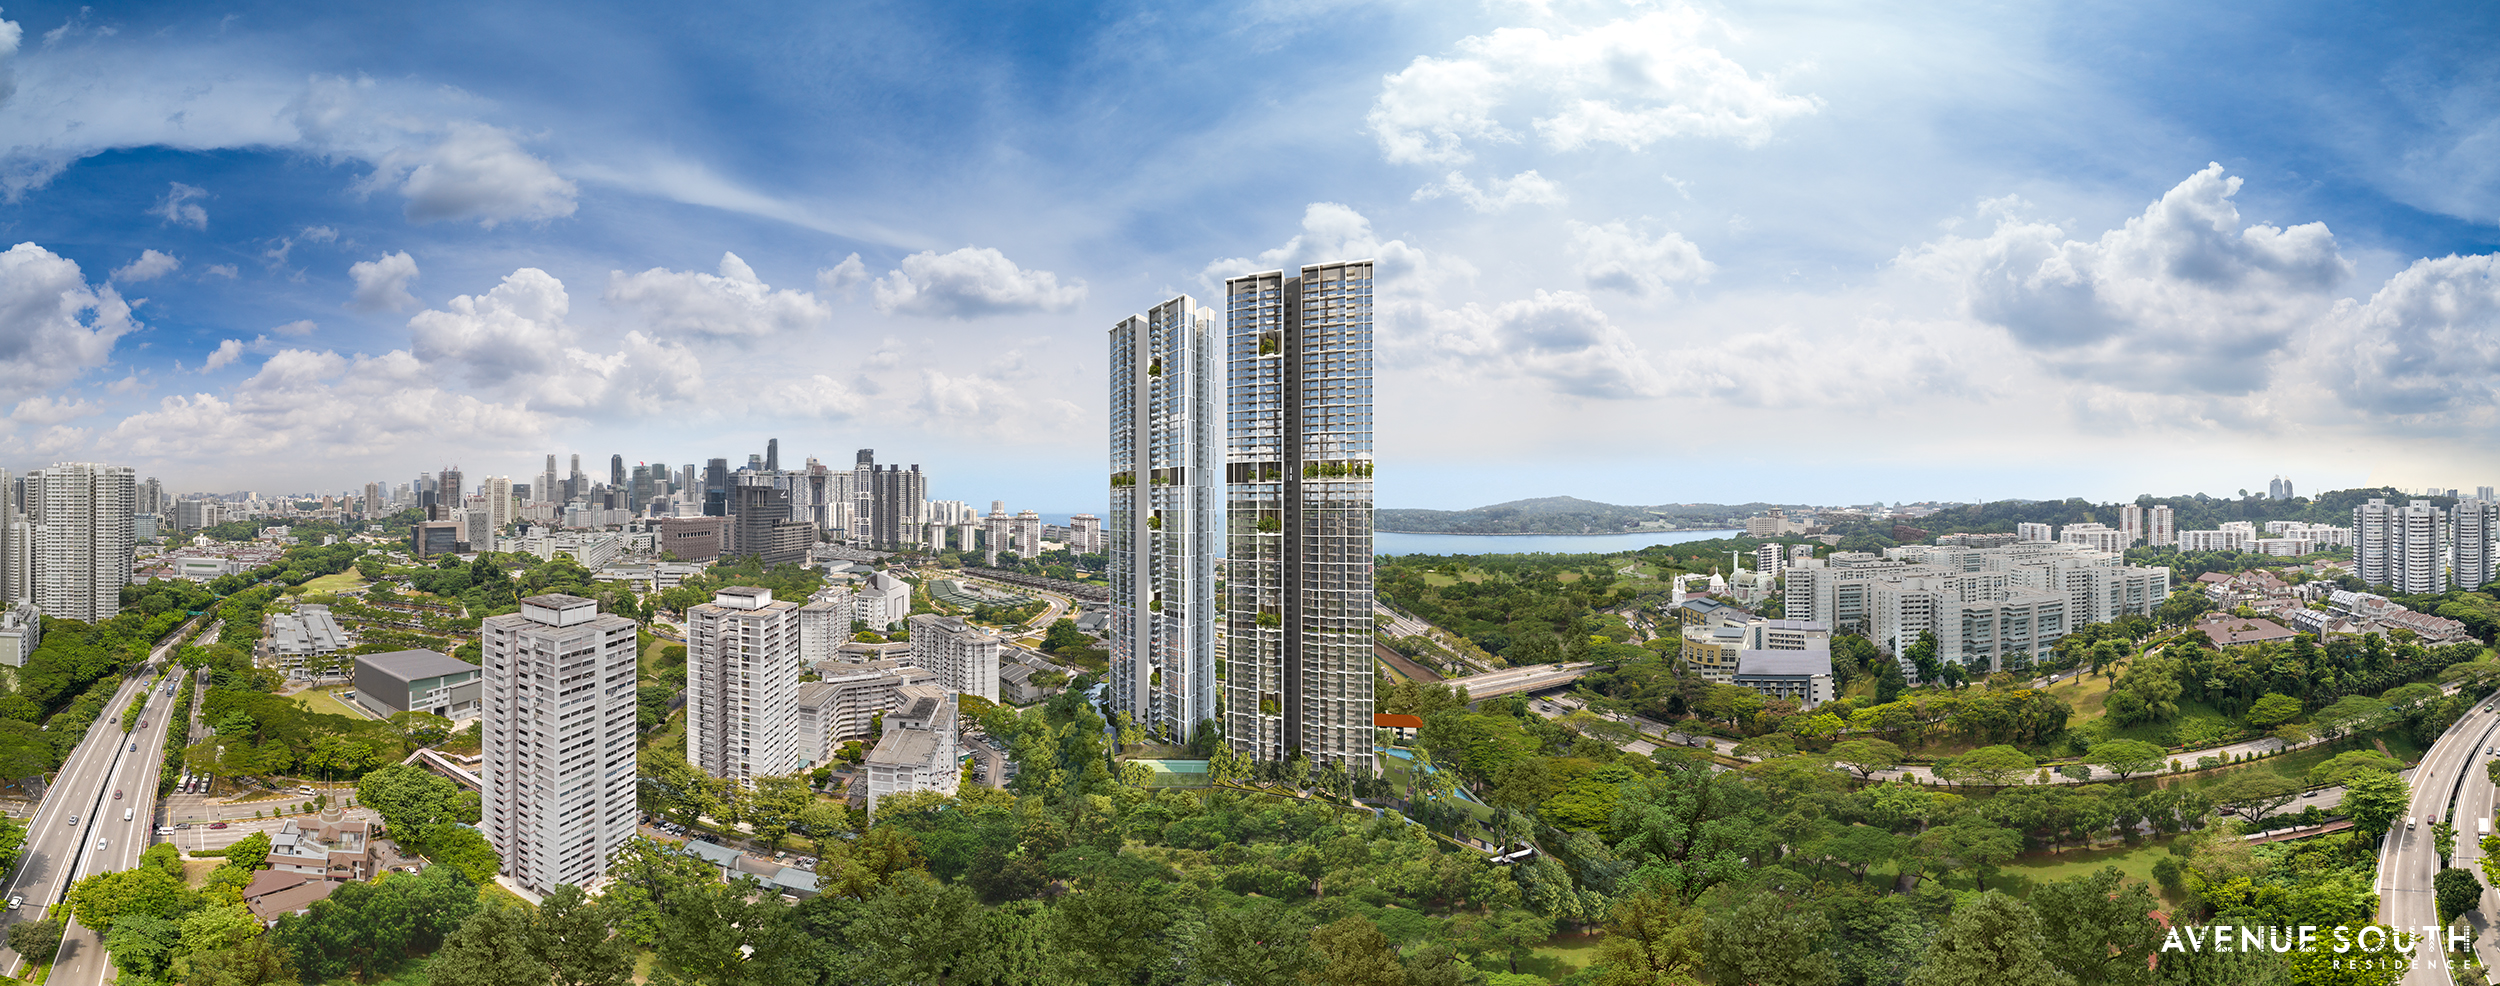 Avenue South Residence Artist Impression 4 Singapore